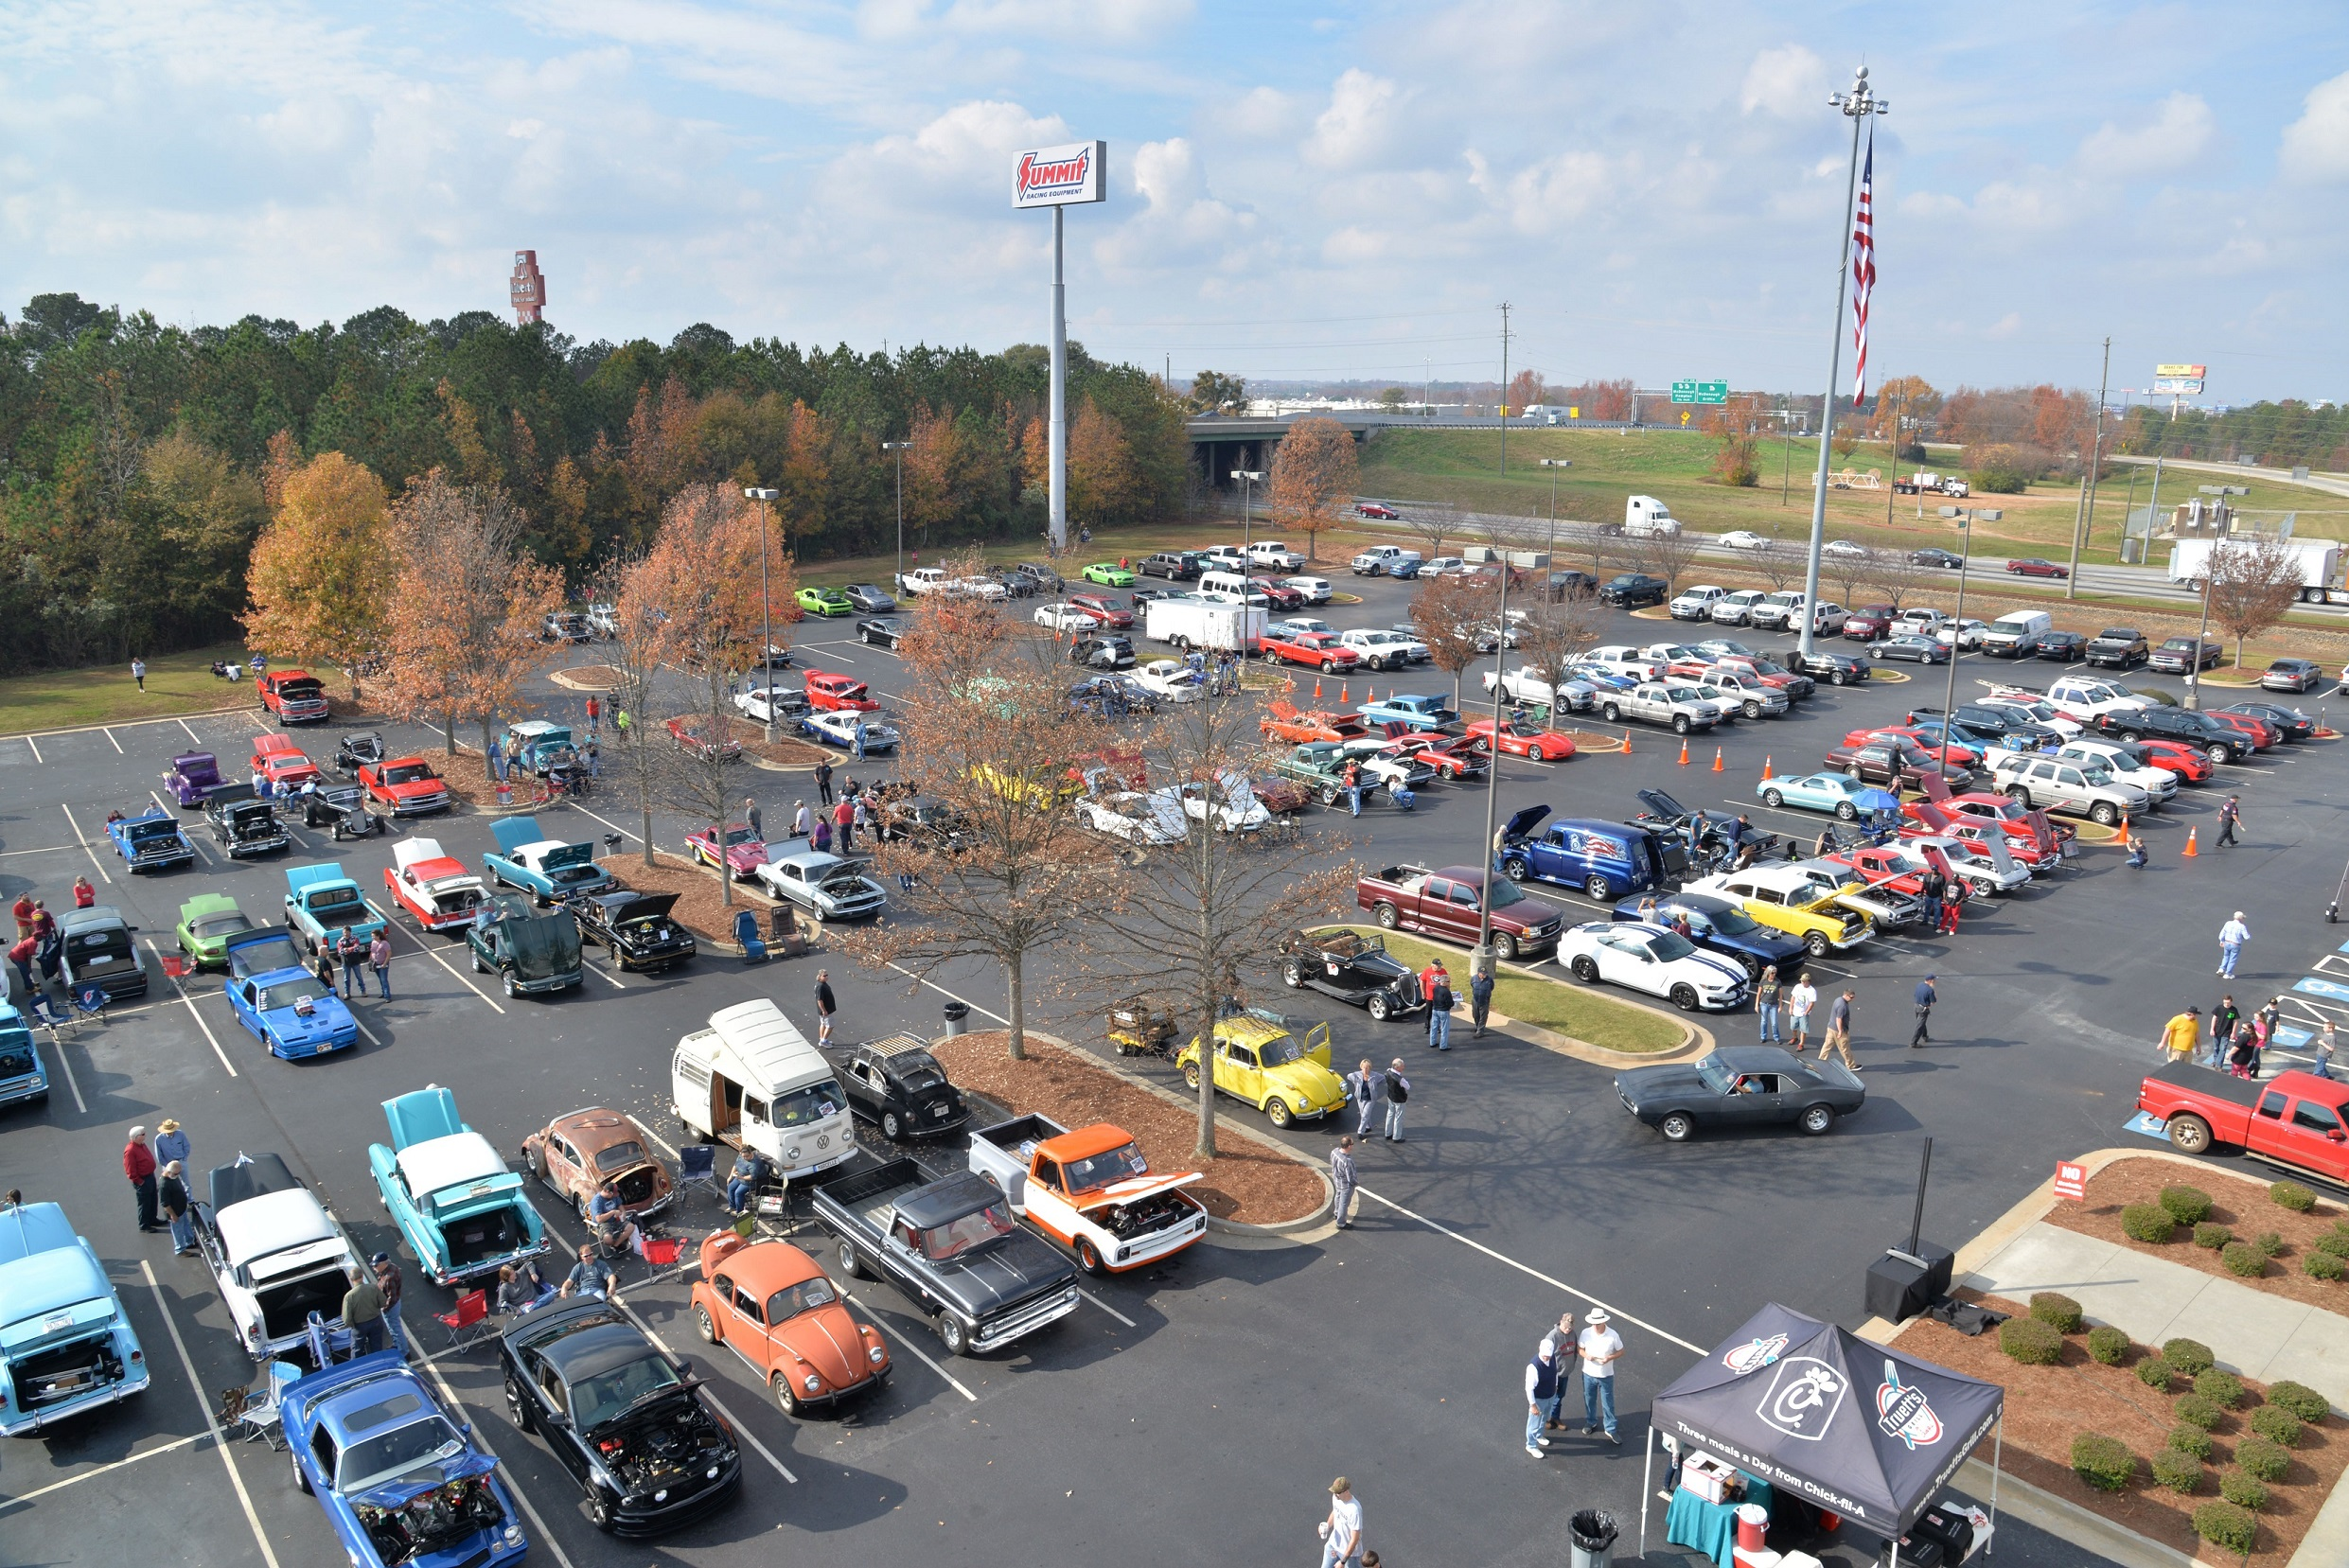 Toys for Tots Cruise In Arial